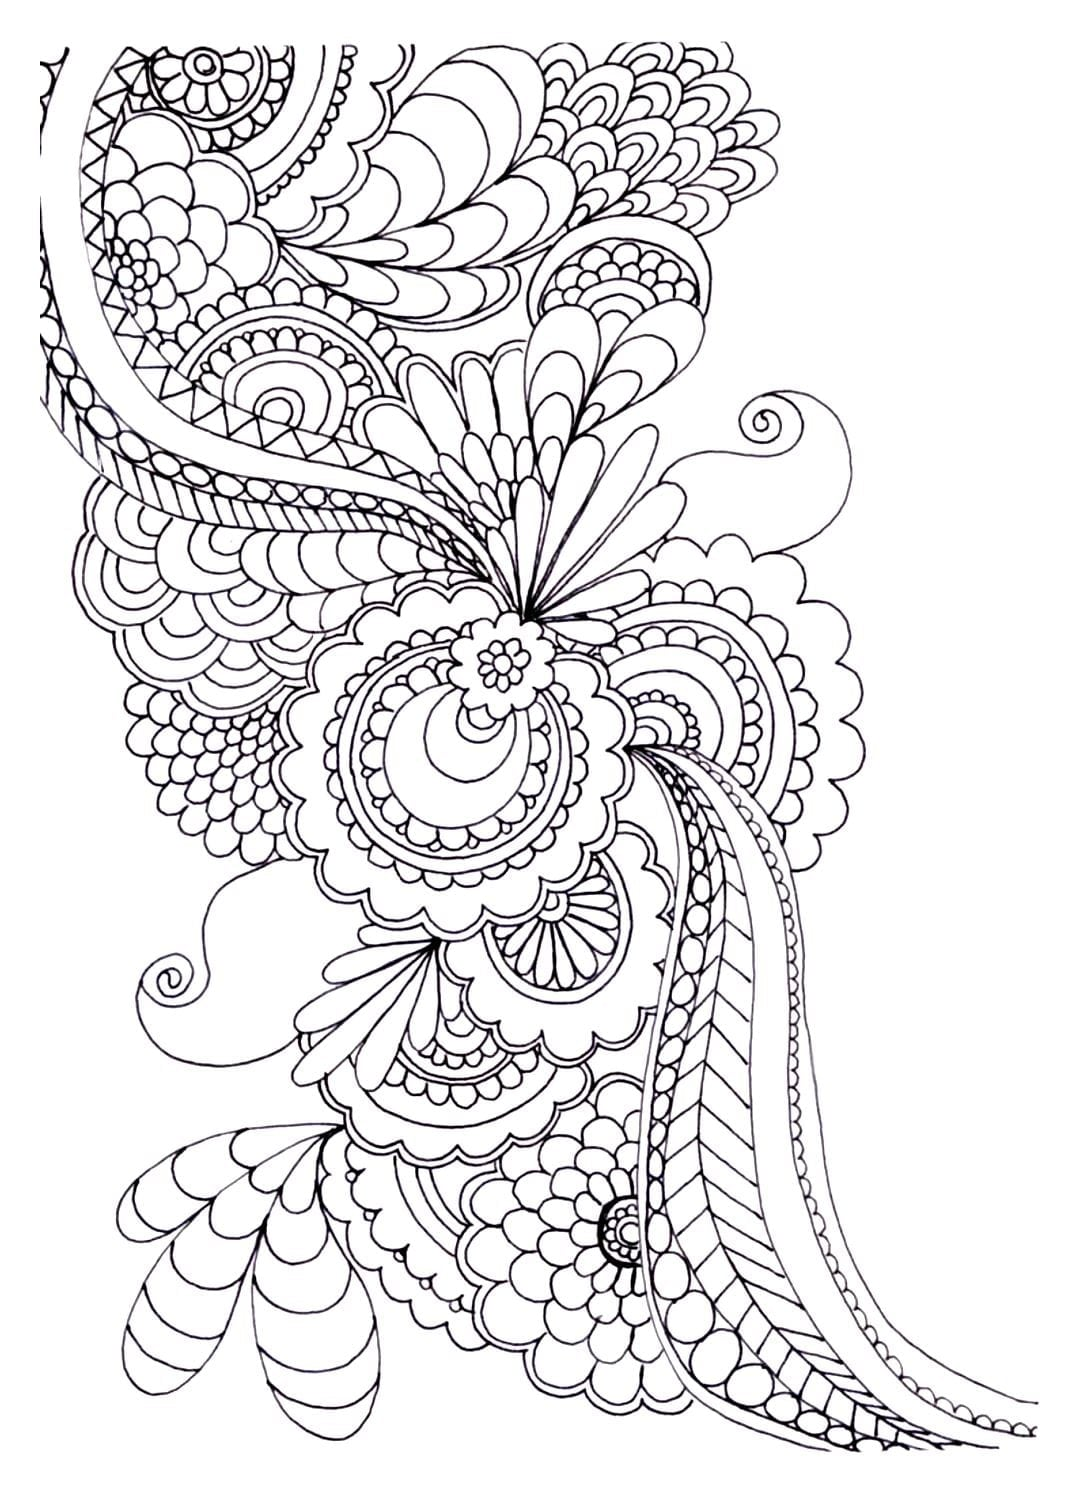 Challenge Free Pictures To Color For Adults Print This Coloring